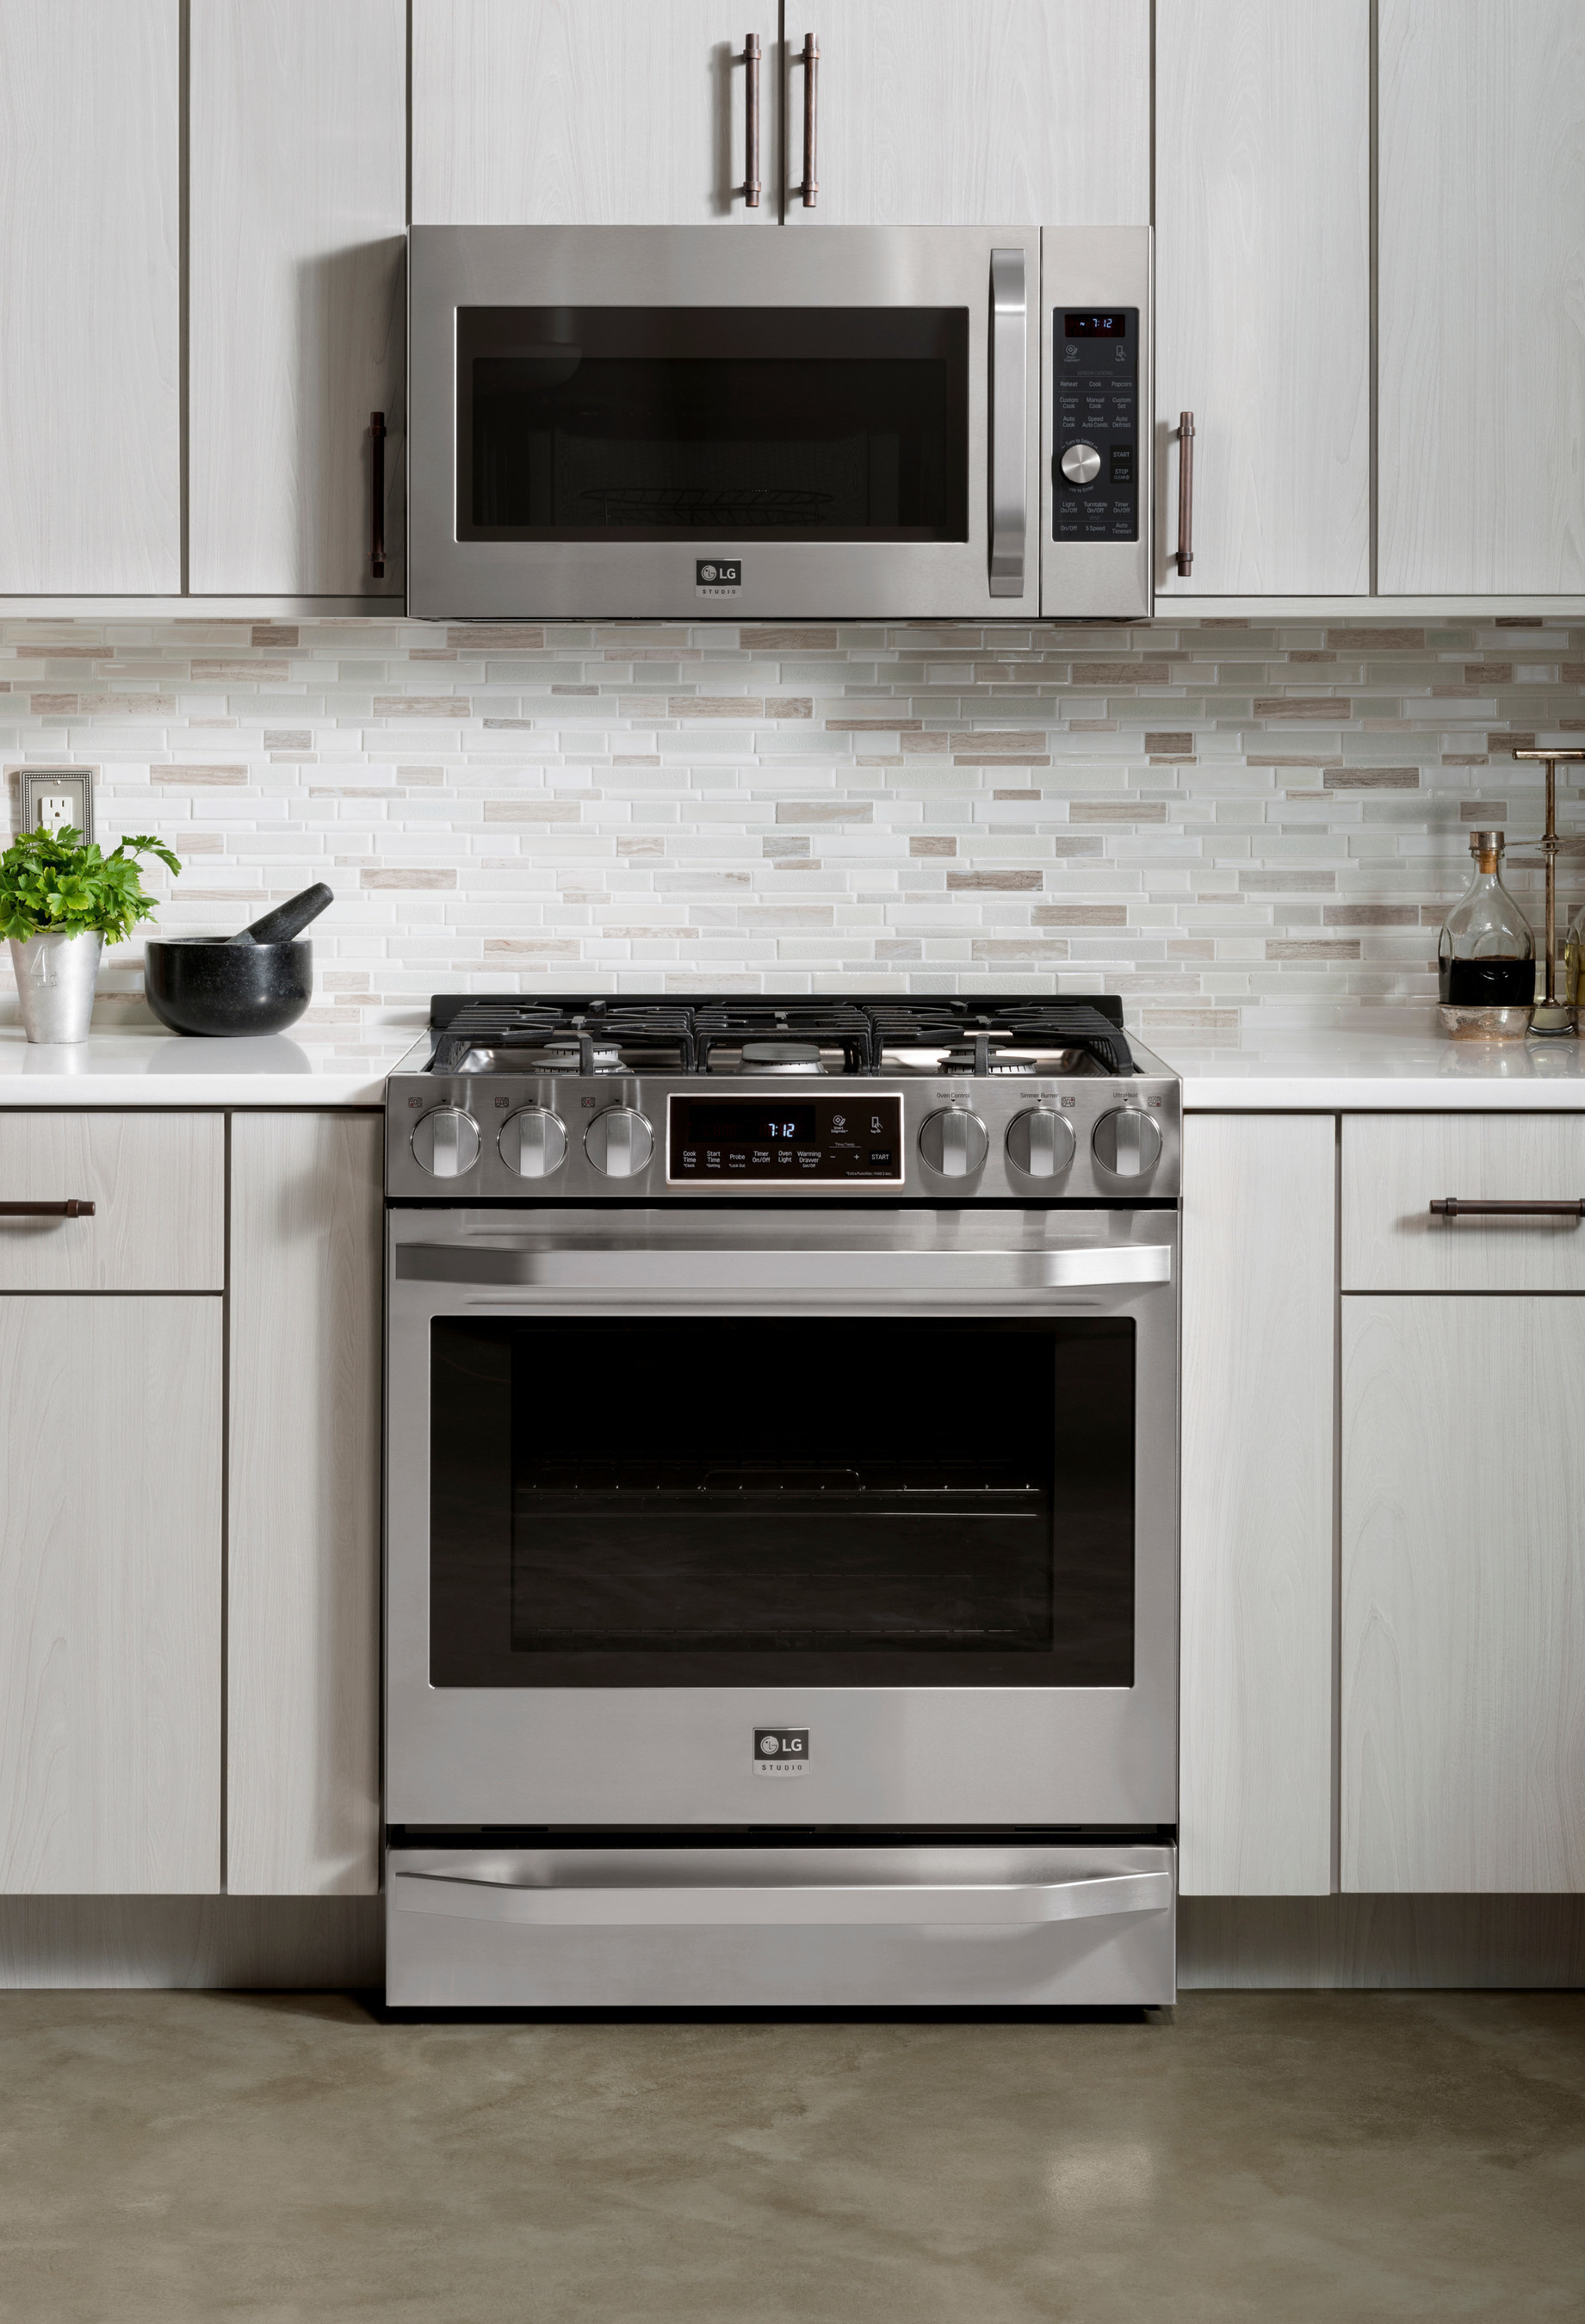 lg kitchen appliances ikea hutch electronics launches new studio line of nate berkus inspired s combine the best in innovation with a sleek